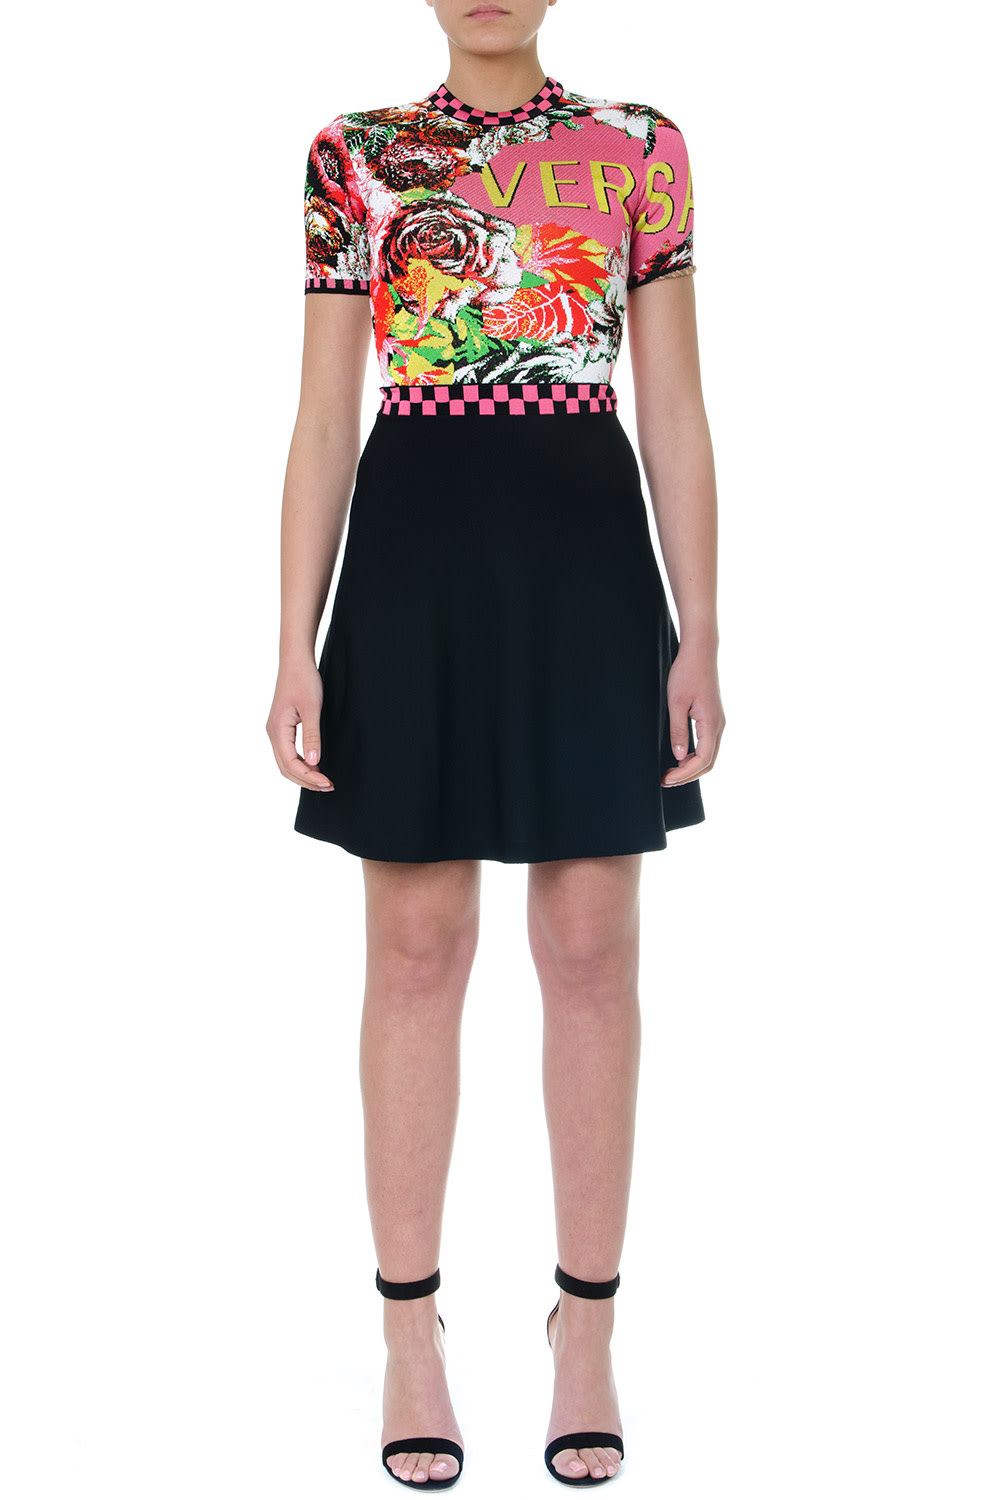 Versace Floramania Printed Dress